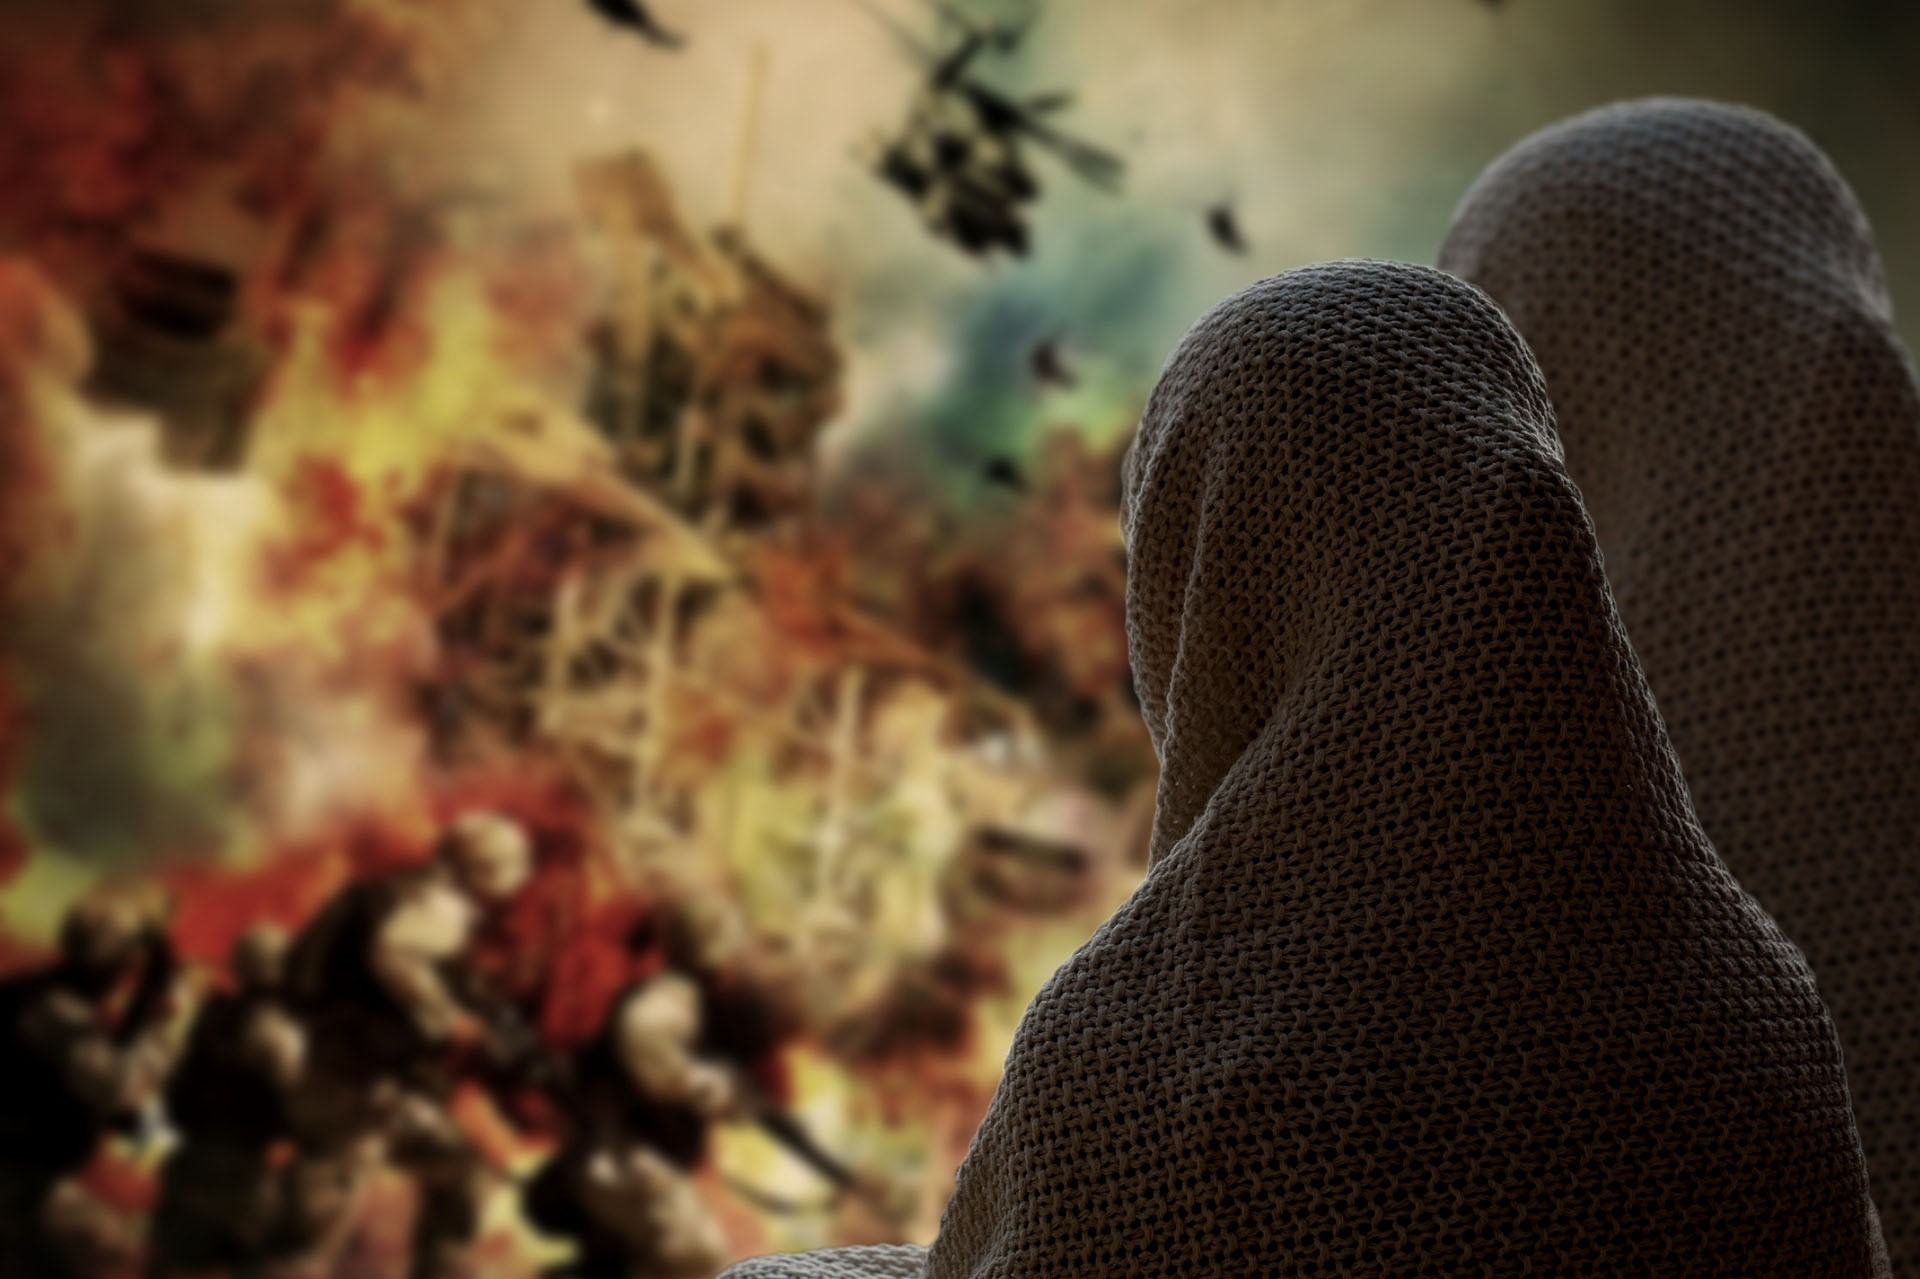 Seeing The Arab Spring Through the Spectacles of Sectarianism